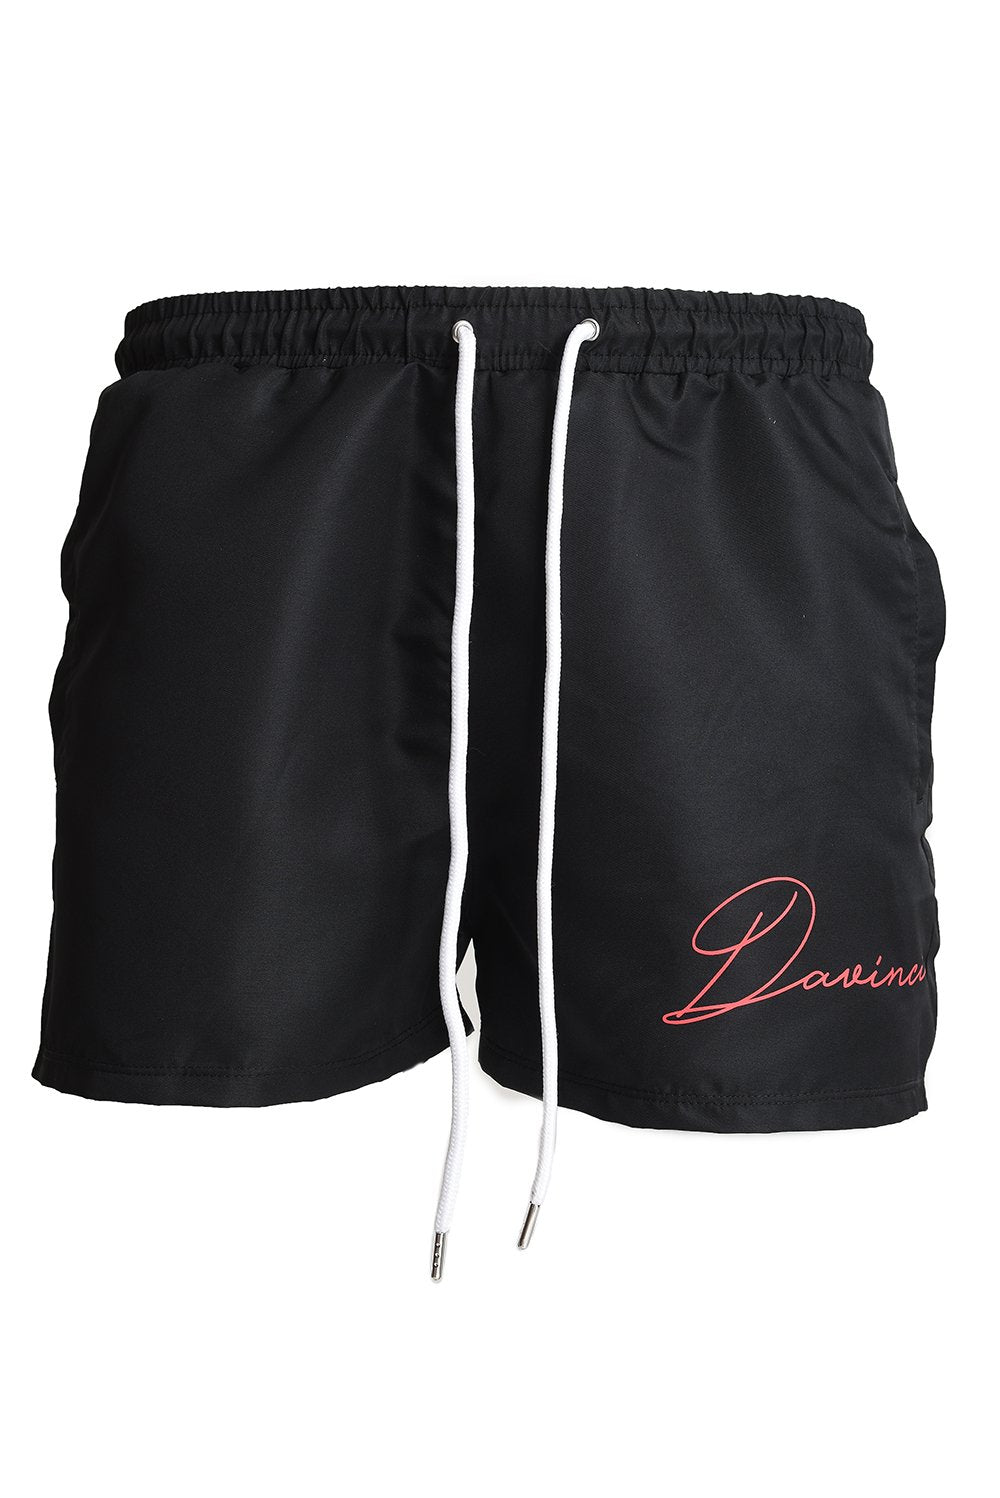 Davinci Signature Shorts